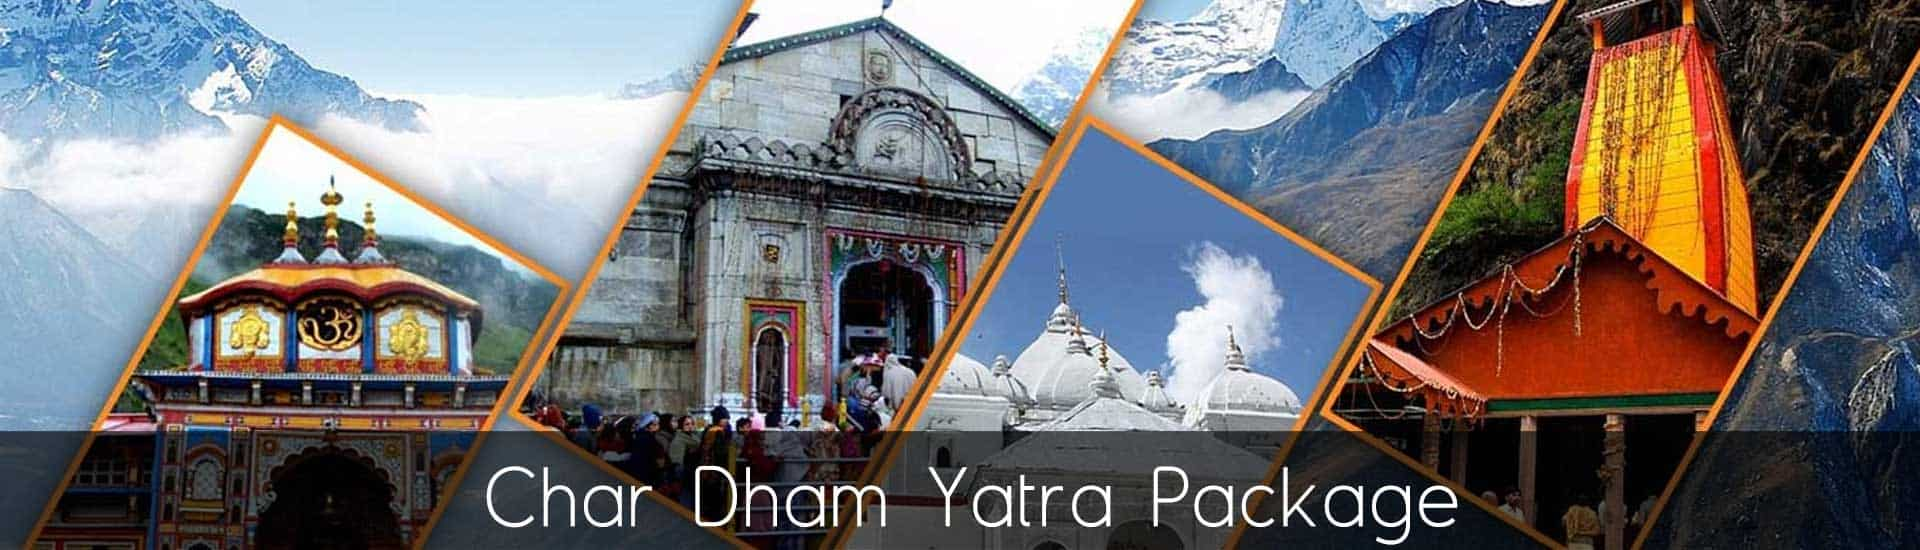 Char Dham Holiday Packages